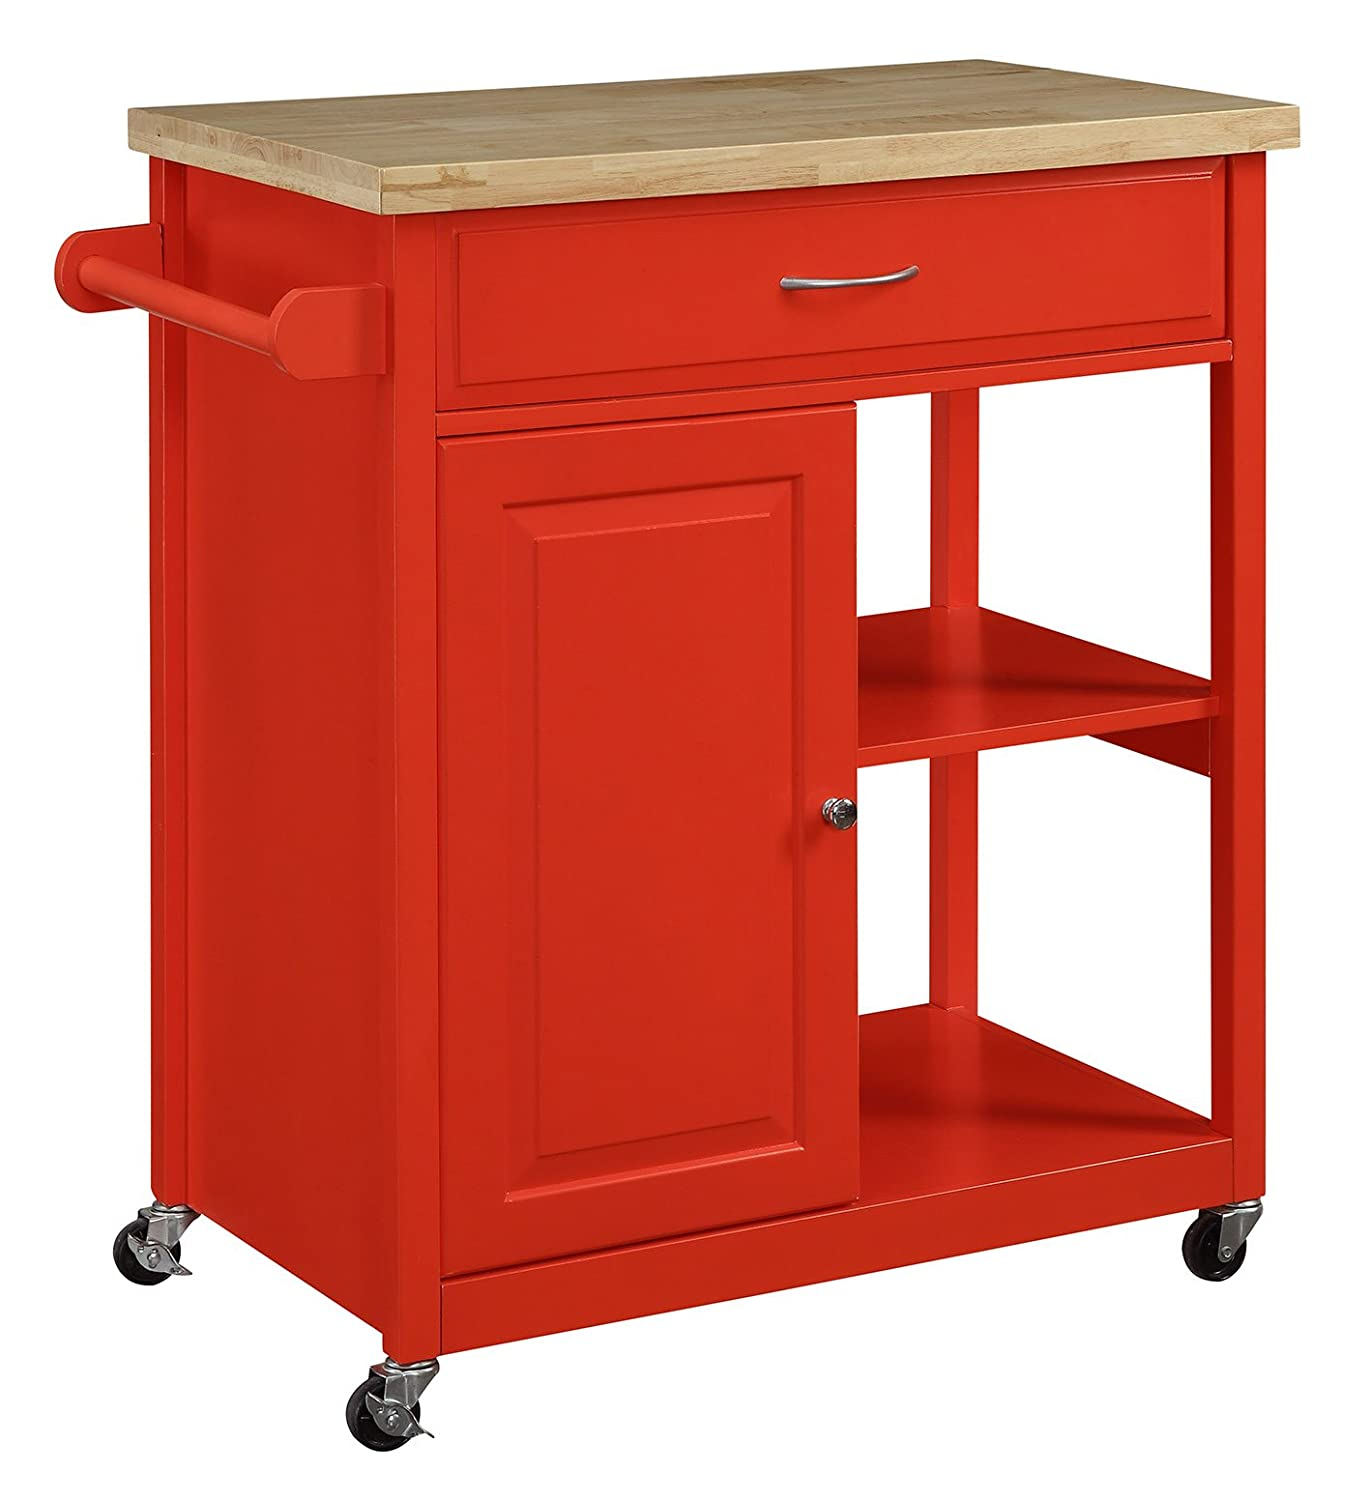 with wicked captivating and kitchen designs mobile butcher polished block drop plus base for shelf porta suitable wooden backup cabinet steel featuring flexible drawers furniture assistant support wheeled bar tiered ideas awesome white storage design island countertop stainless three breakfast portable